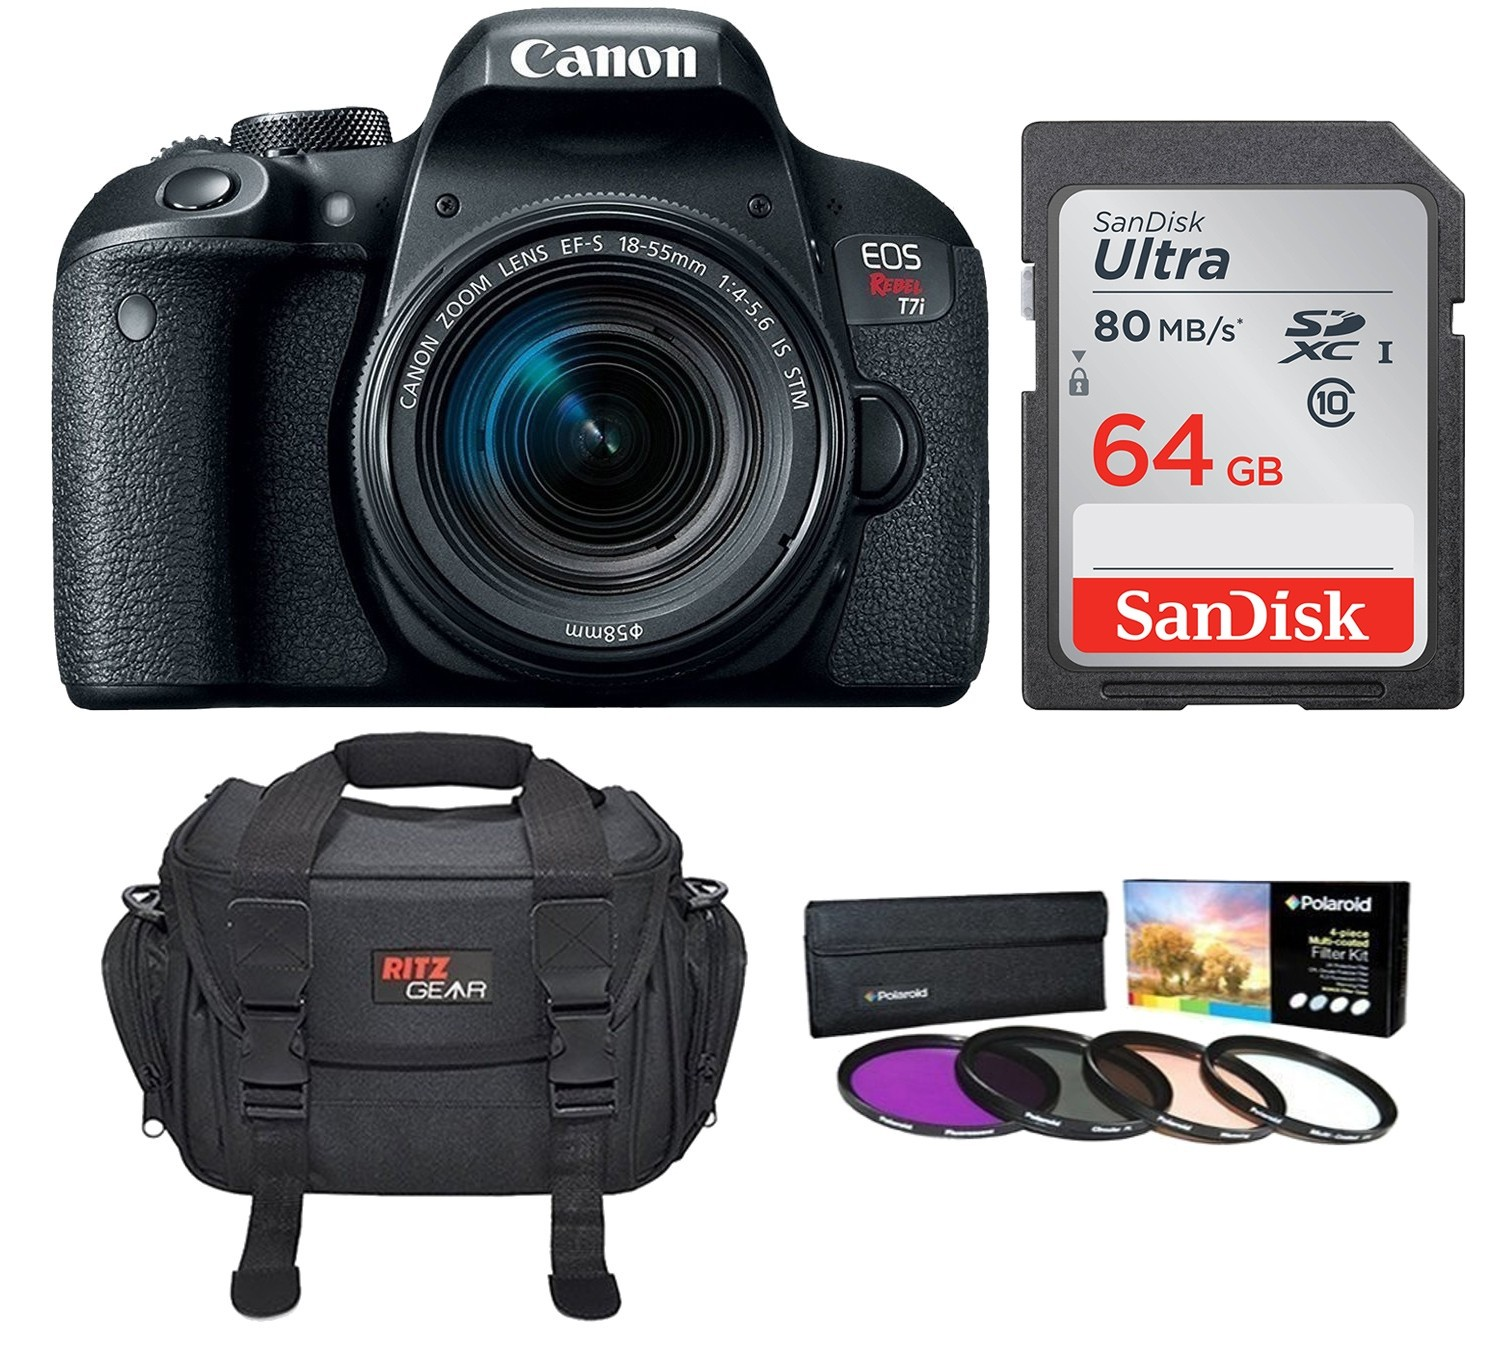 Canon EOS Rebel T7i DSLR with 18-55mm Lens and Accessories